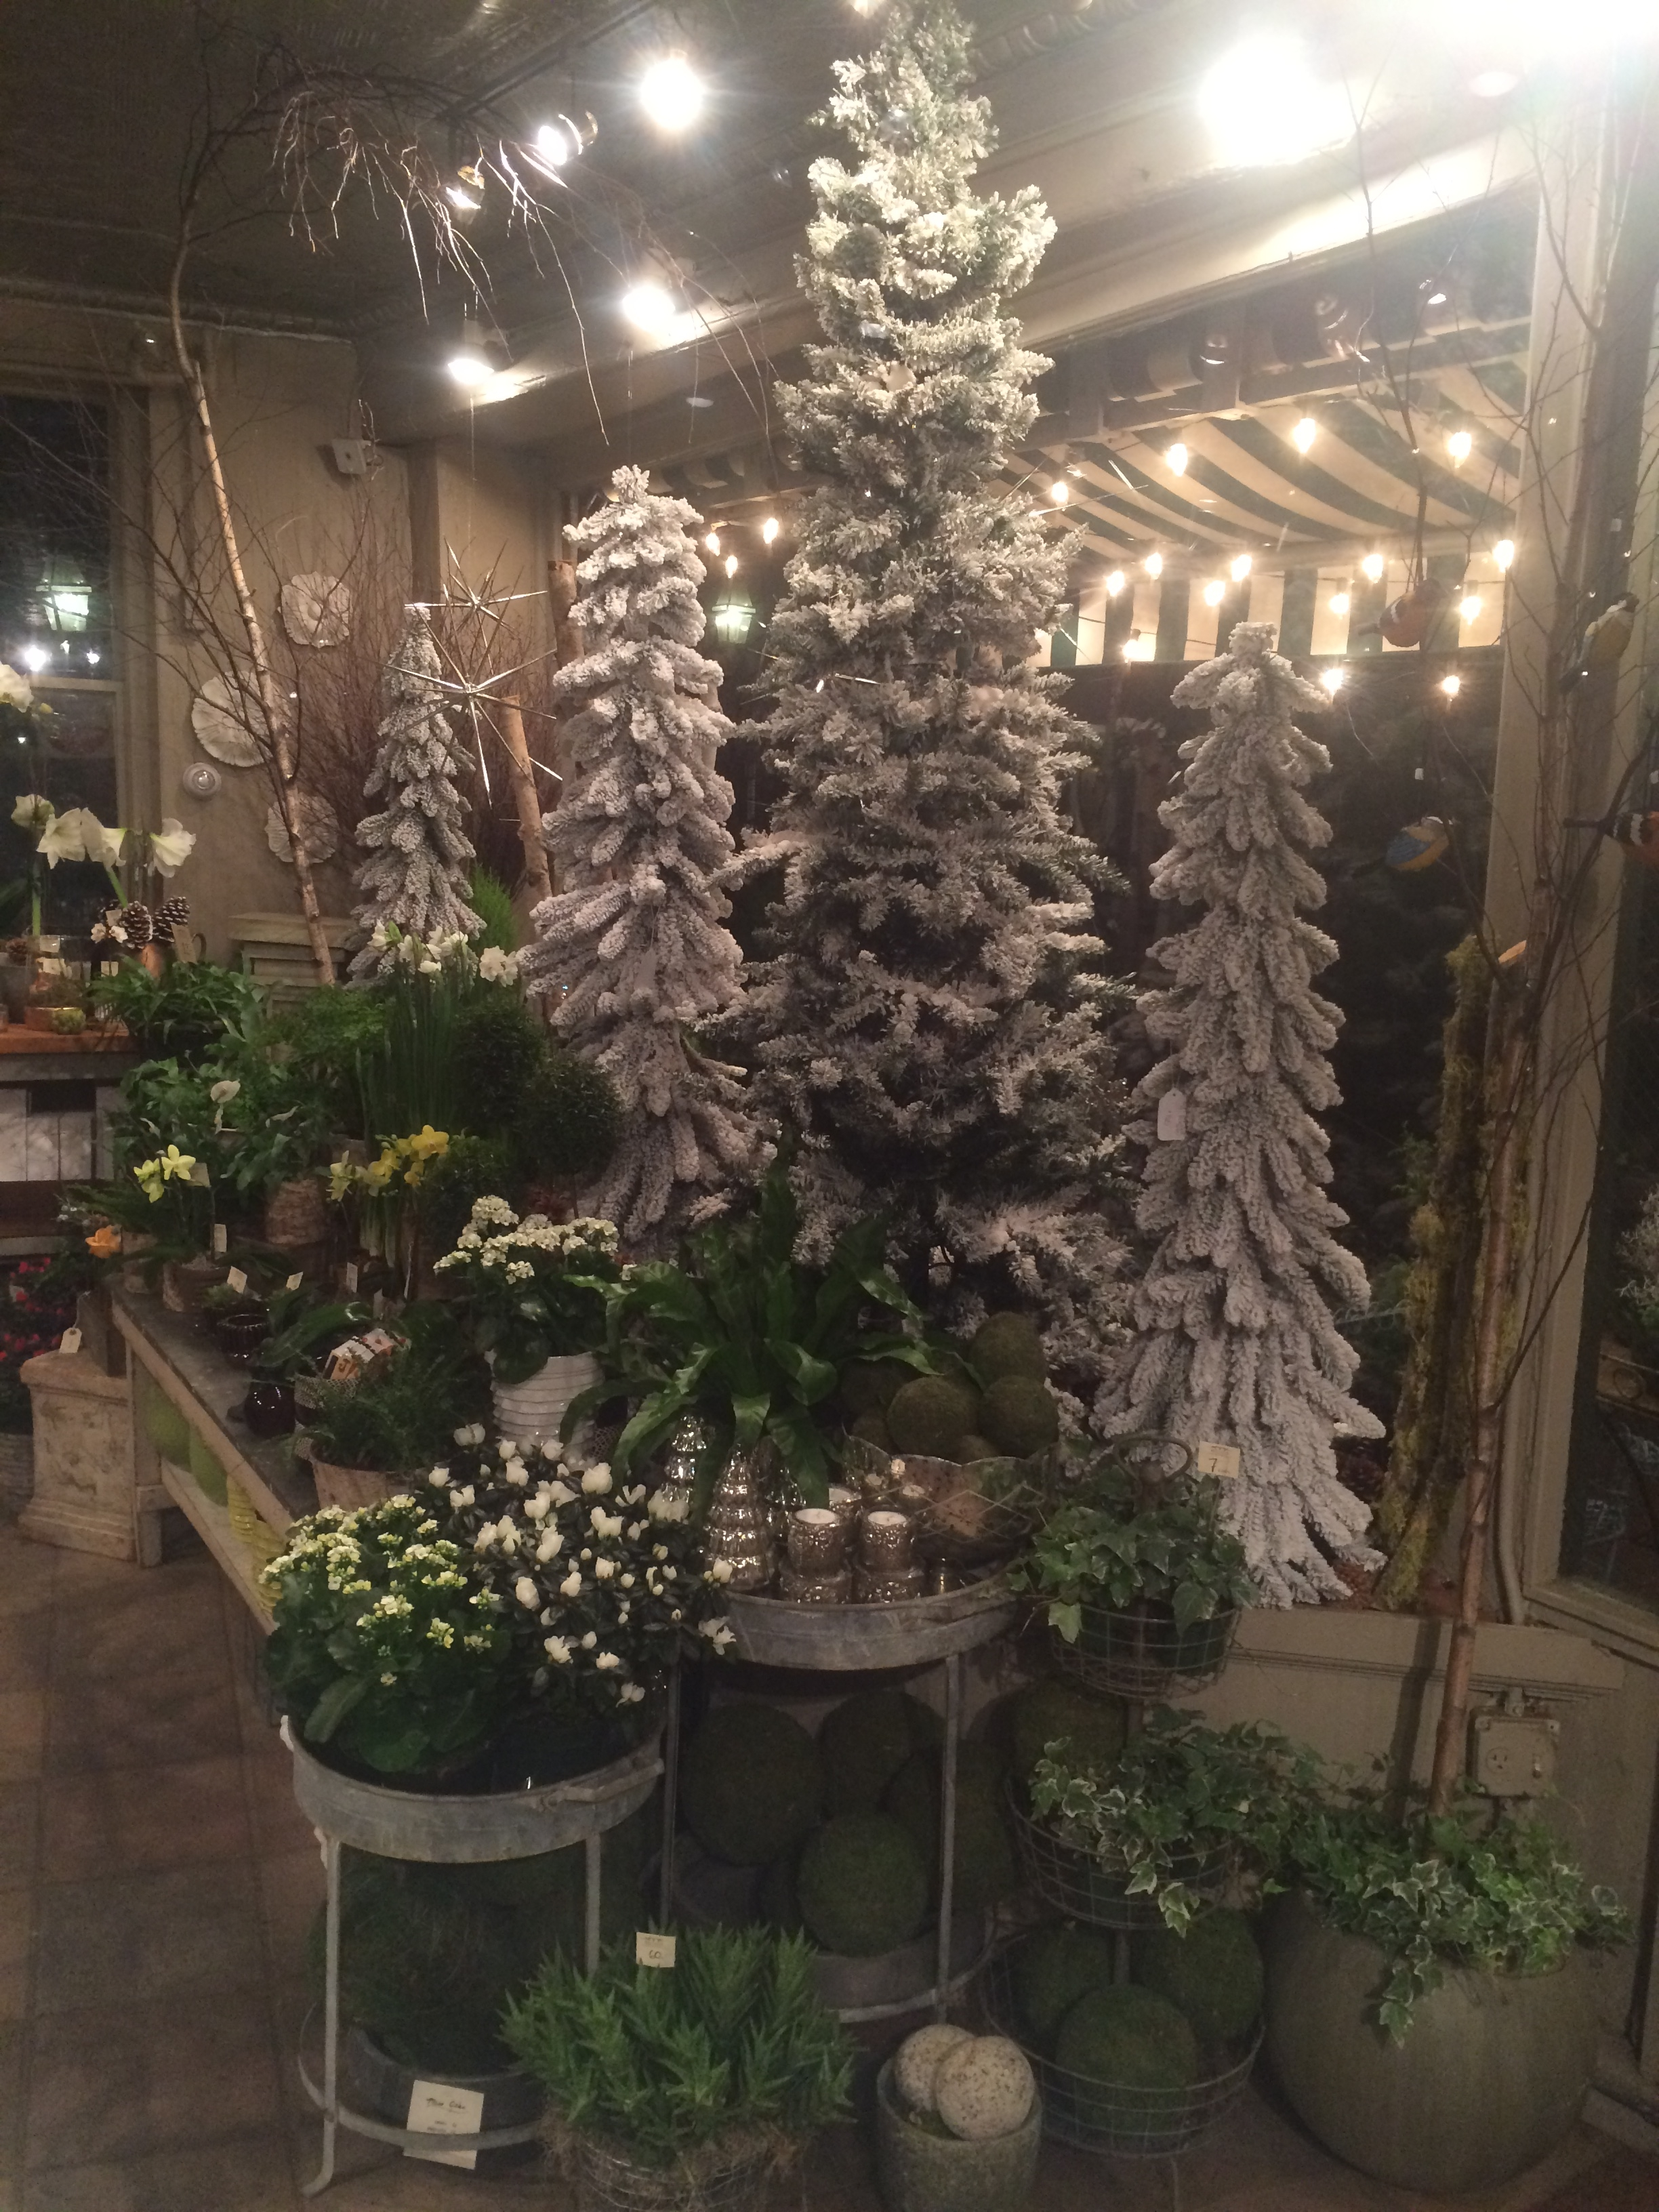 Finally, our stately snowy trees adorn our windows and provide a great backdrop for the green flowering plants and ferns.